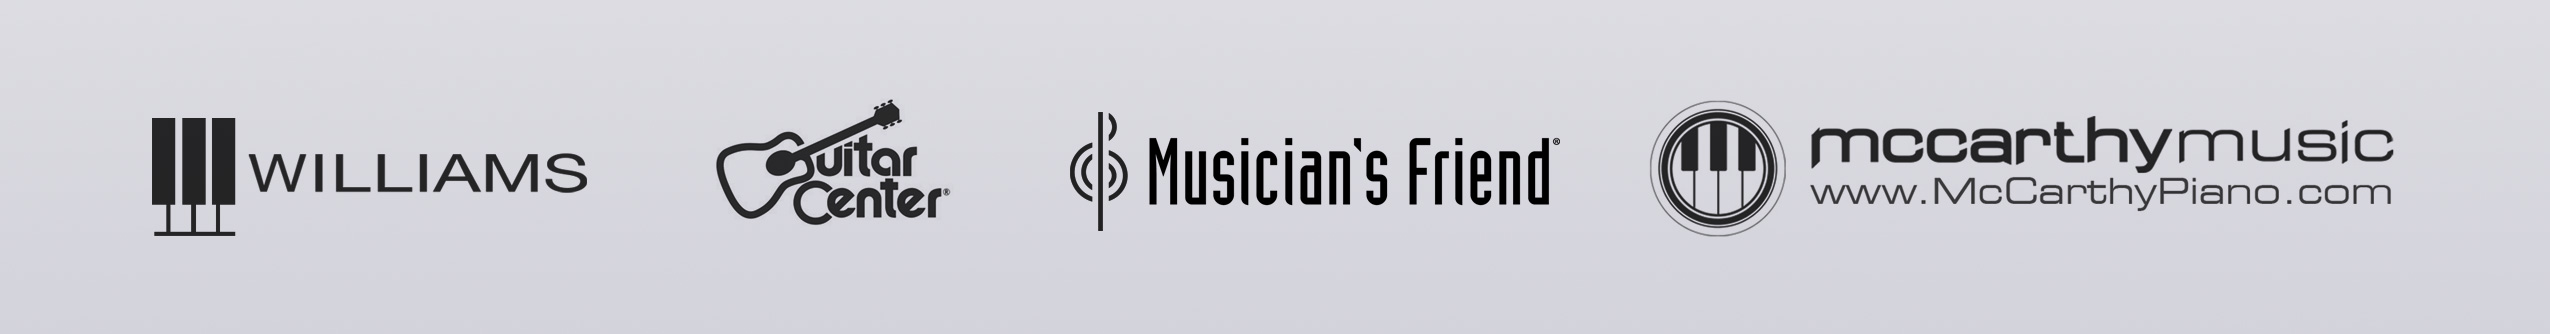 Williams Guitar Center Musicians Friend McCarthy Music Logos